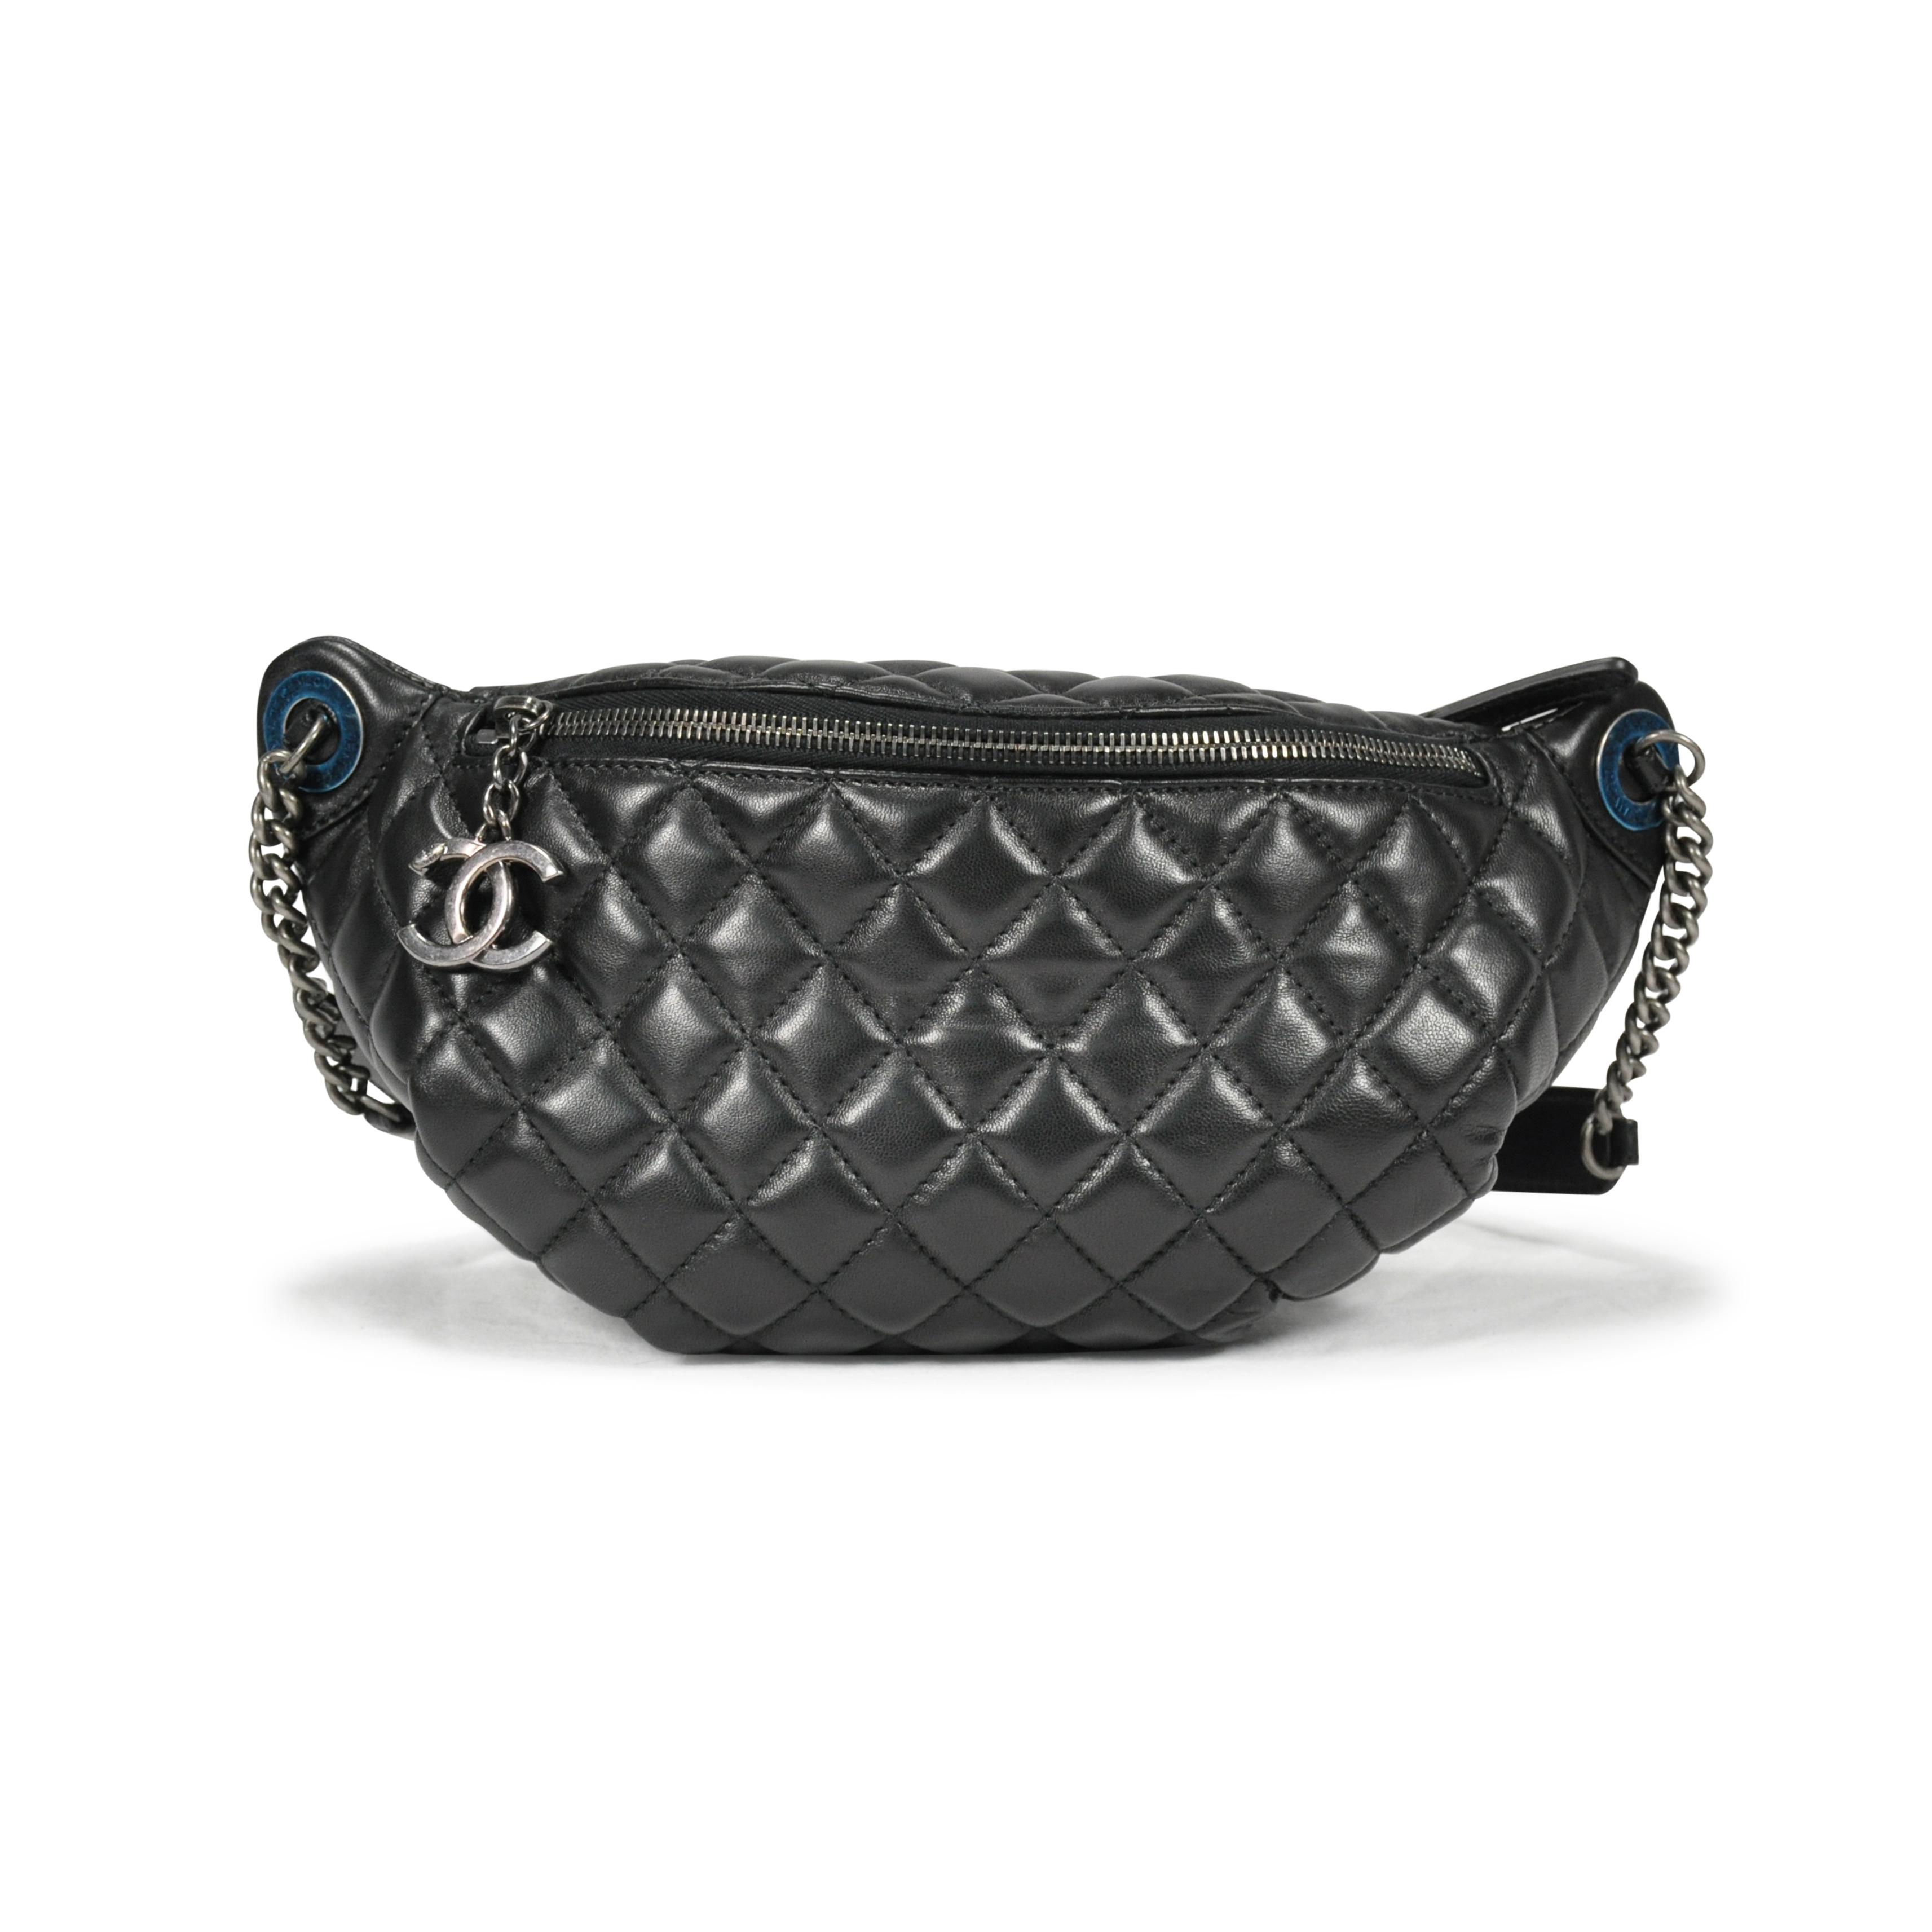 6b65d7e41de63 Authentic pre owned chanel quilted fanny pack waist bag the fifth  collection jpg 3426x3426 Chanel belt